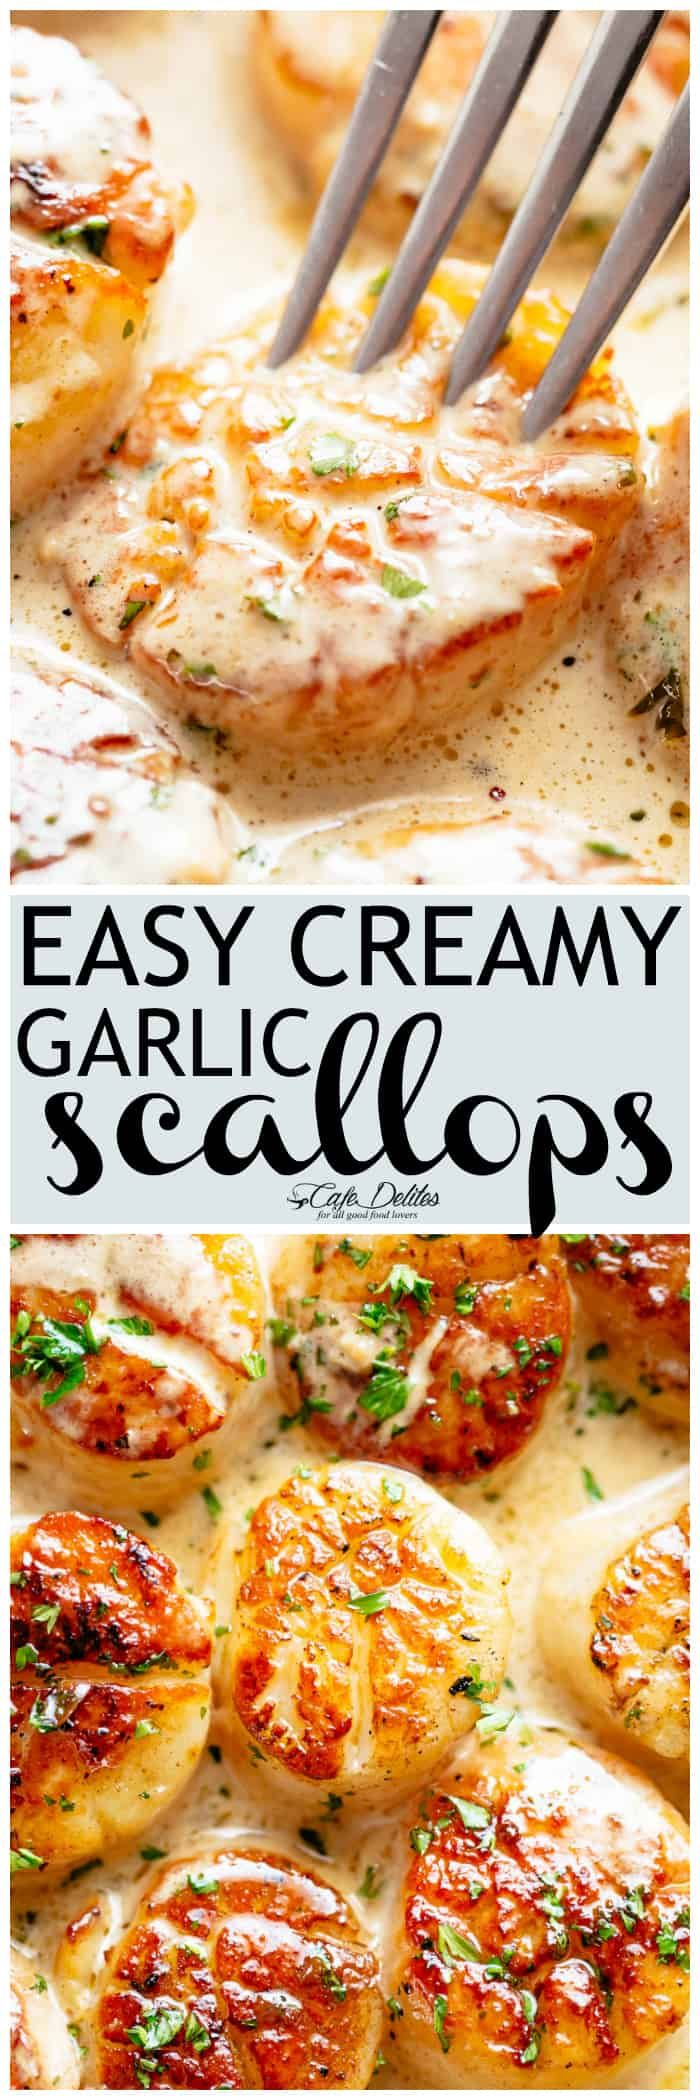 Creamy Garlic Scallops - Cafe Delites